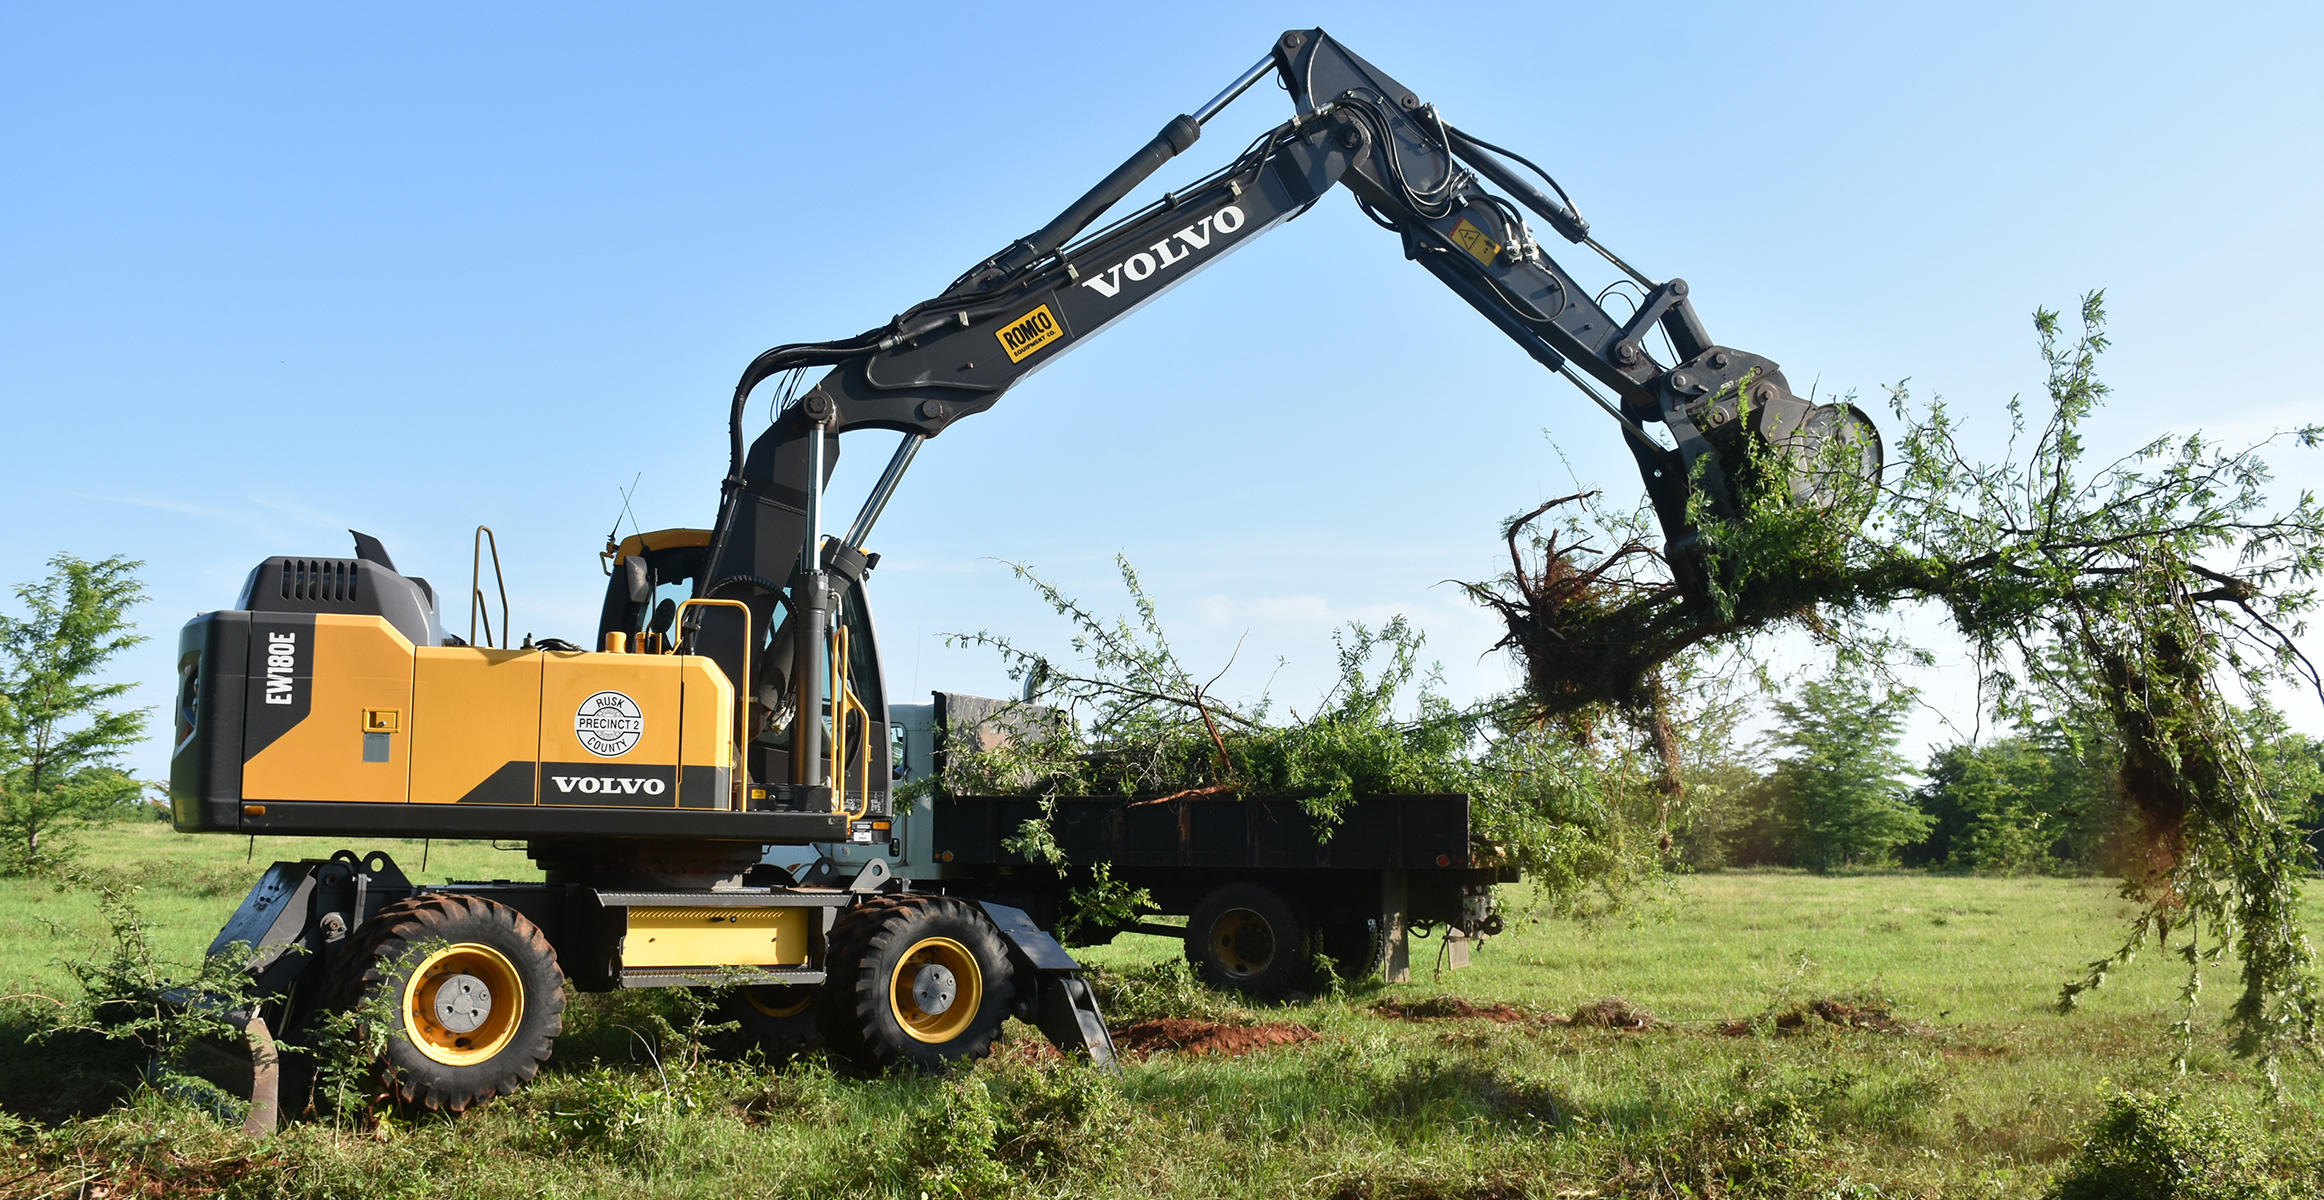 Wheeled excavators used for storm clean-up in Rusk County, Texas